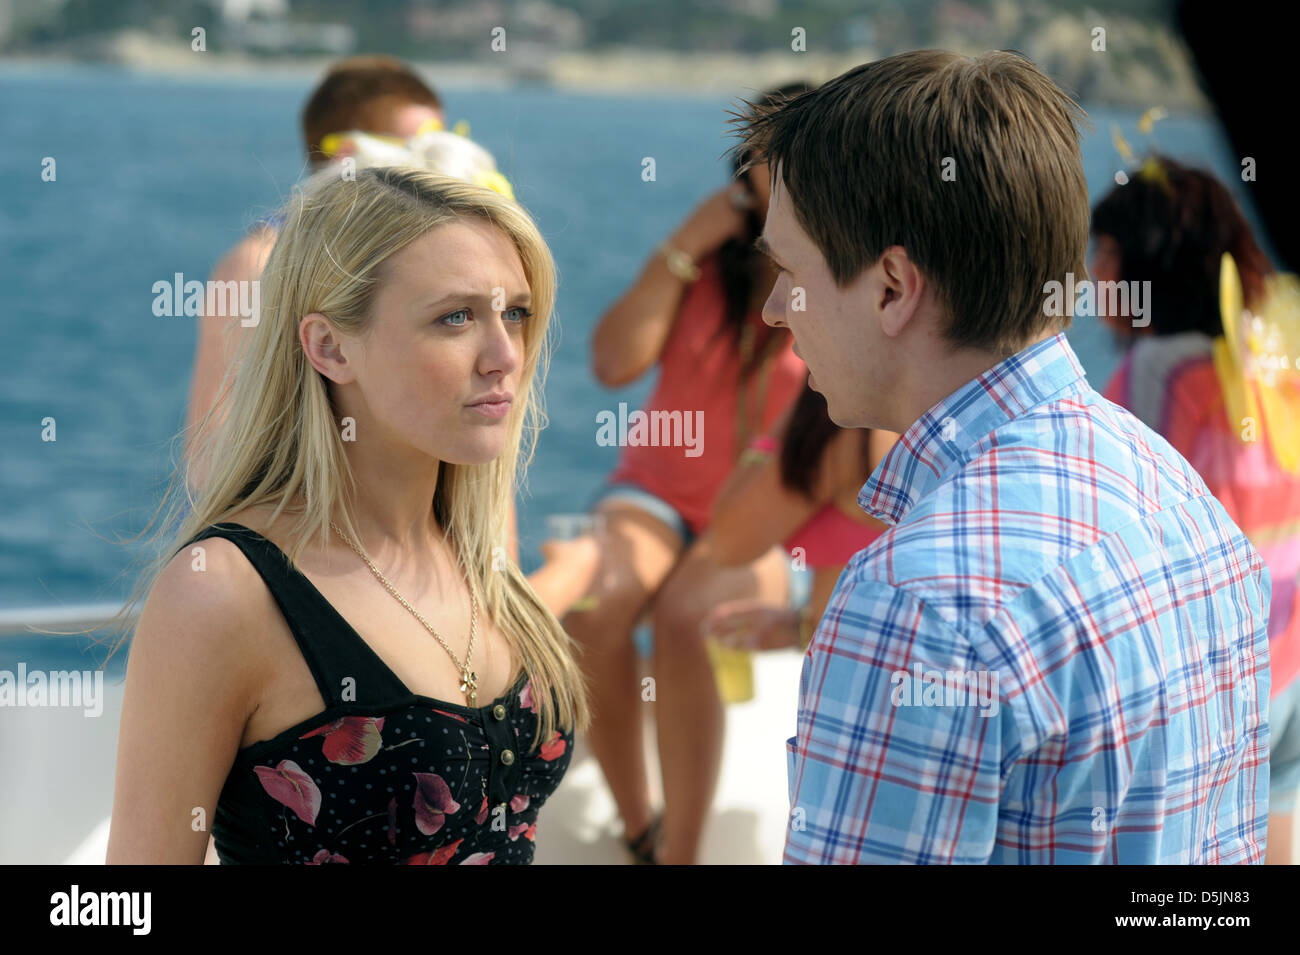 emily-head-joe-thomas-the-inbetweeners-movie-2011-D5JN83.jpg